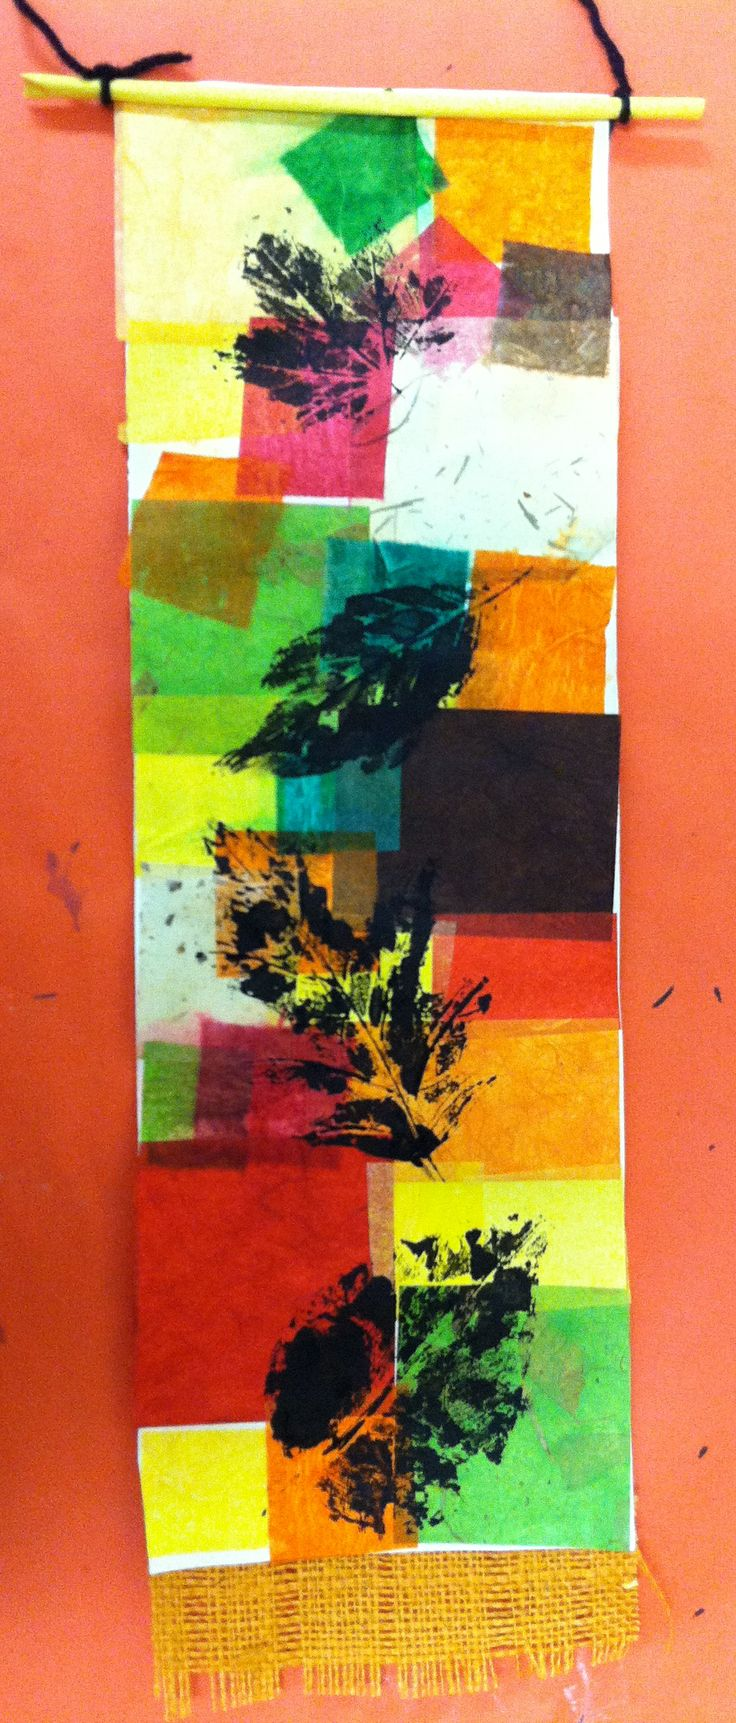 Highland Park Elementary - 3rd Grade - Fall Leaf Print Collage Hanging